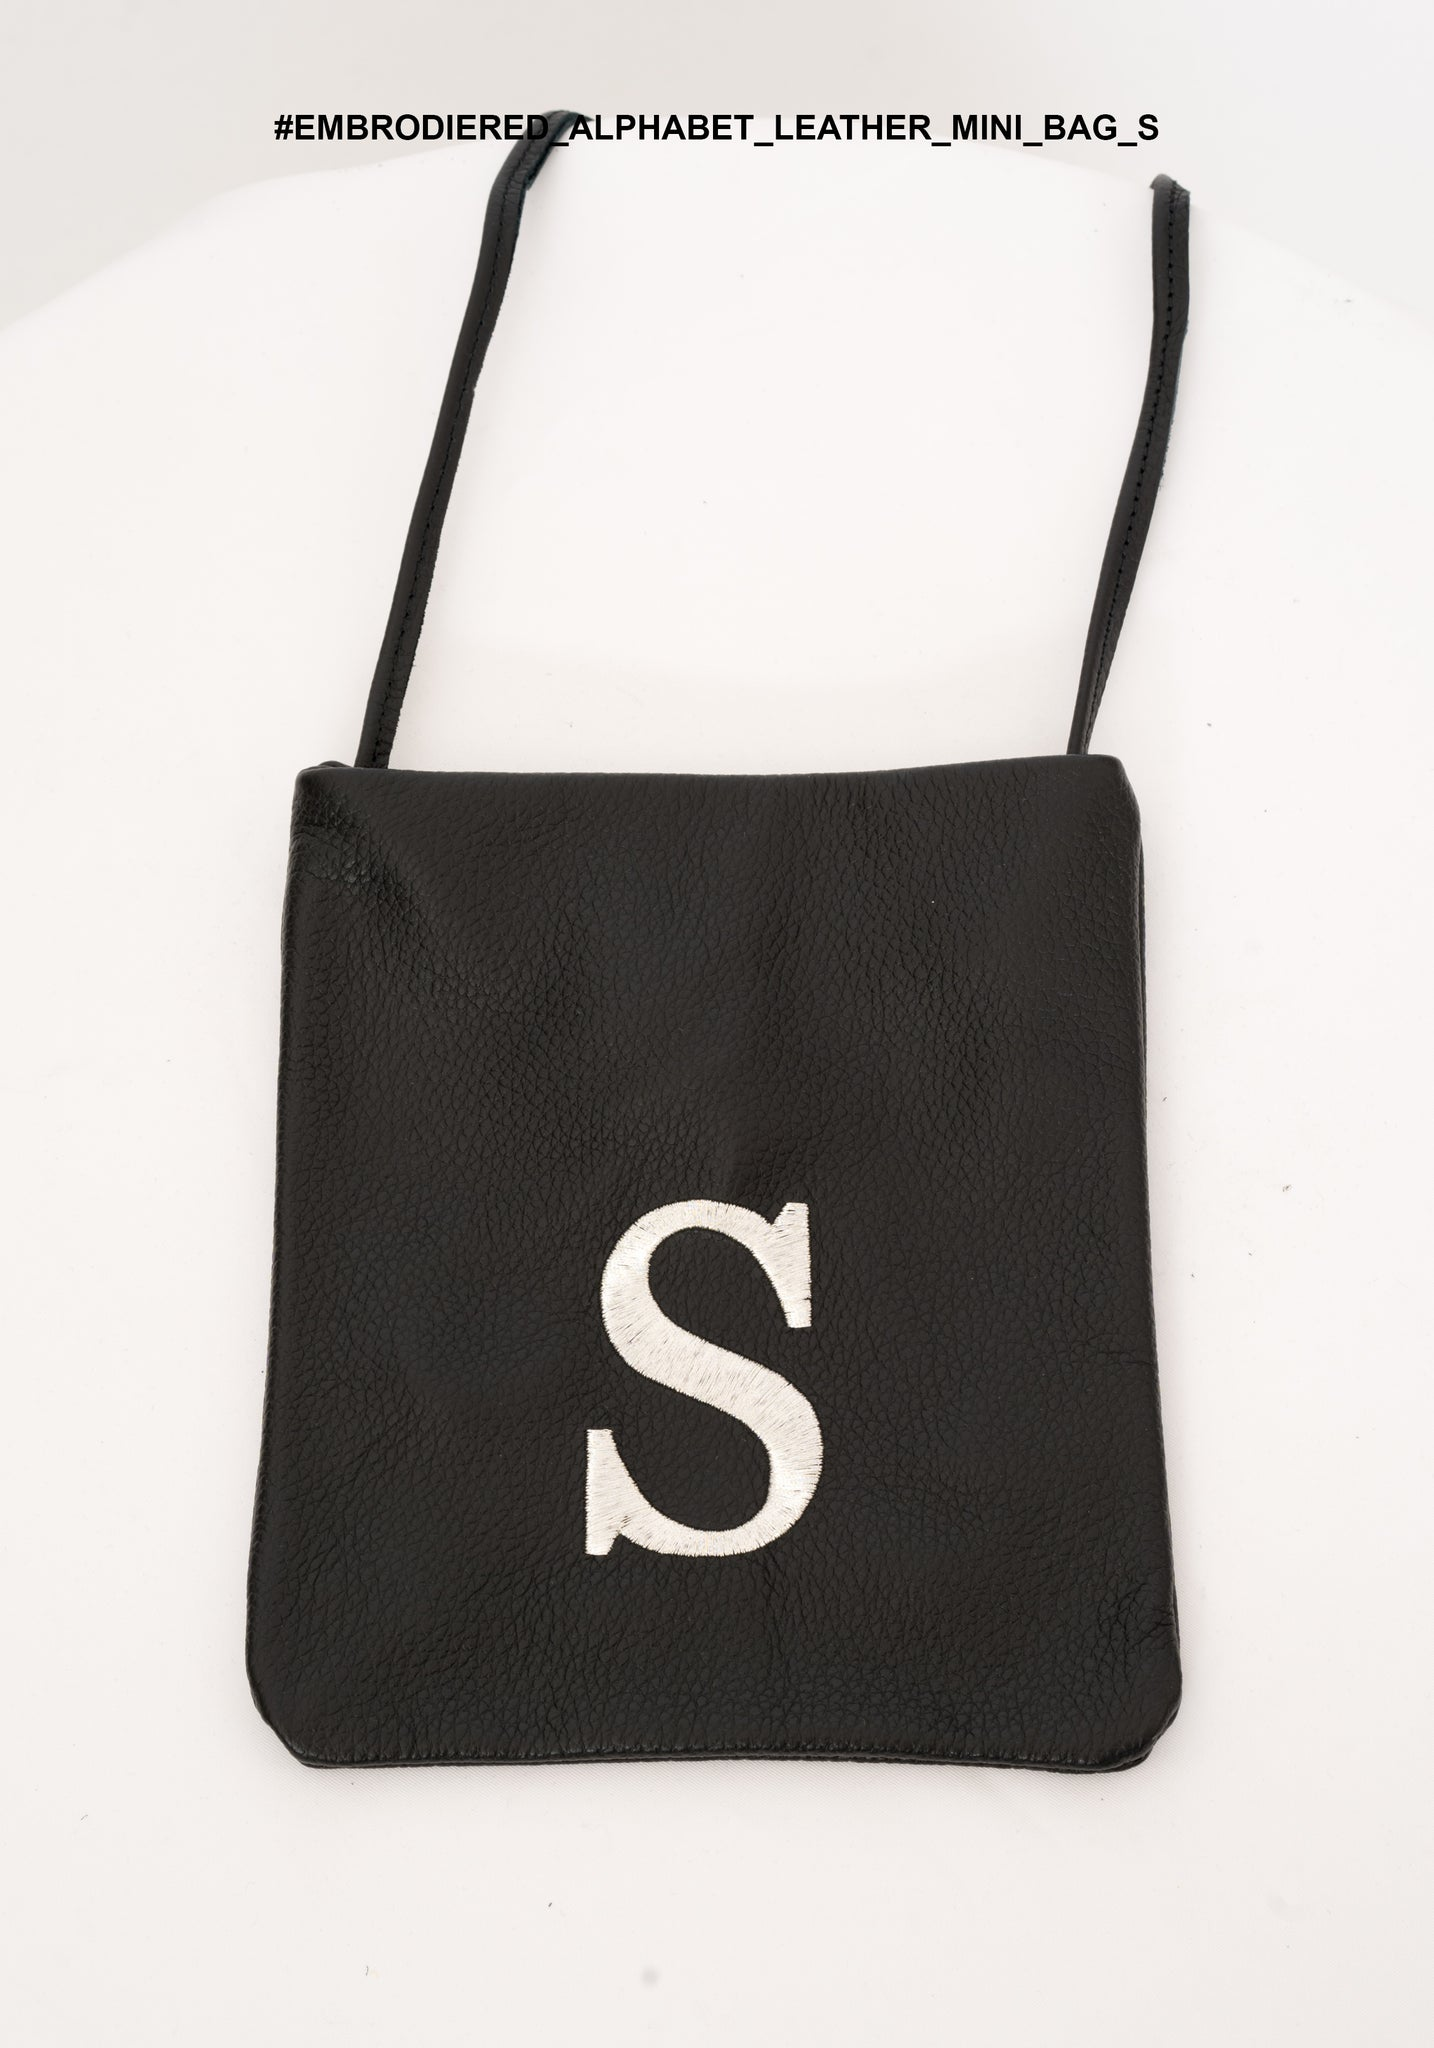 Embroidered Alphabet Leather Mini Bag S - whoami